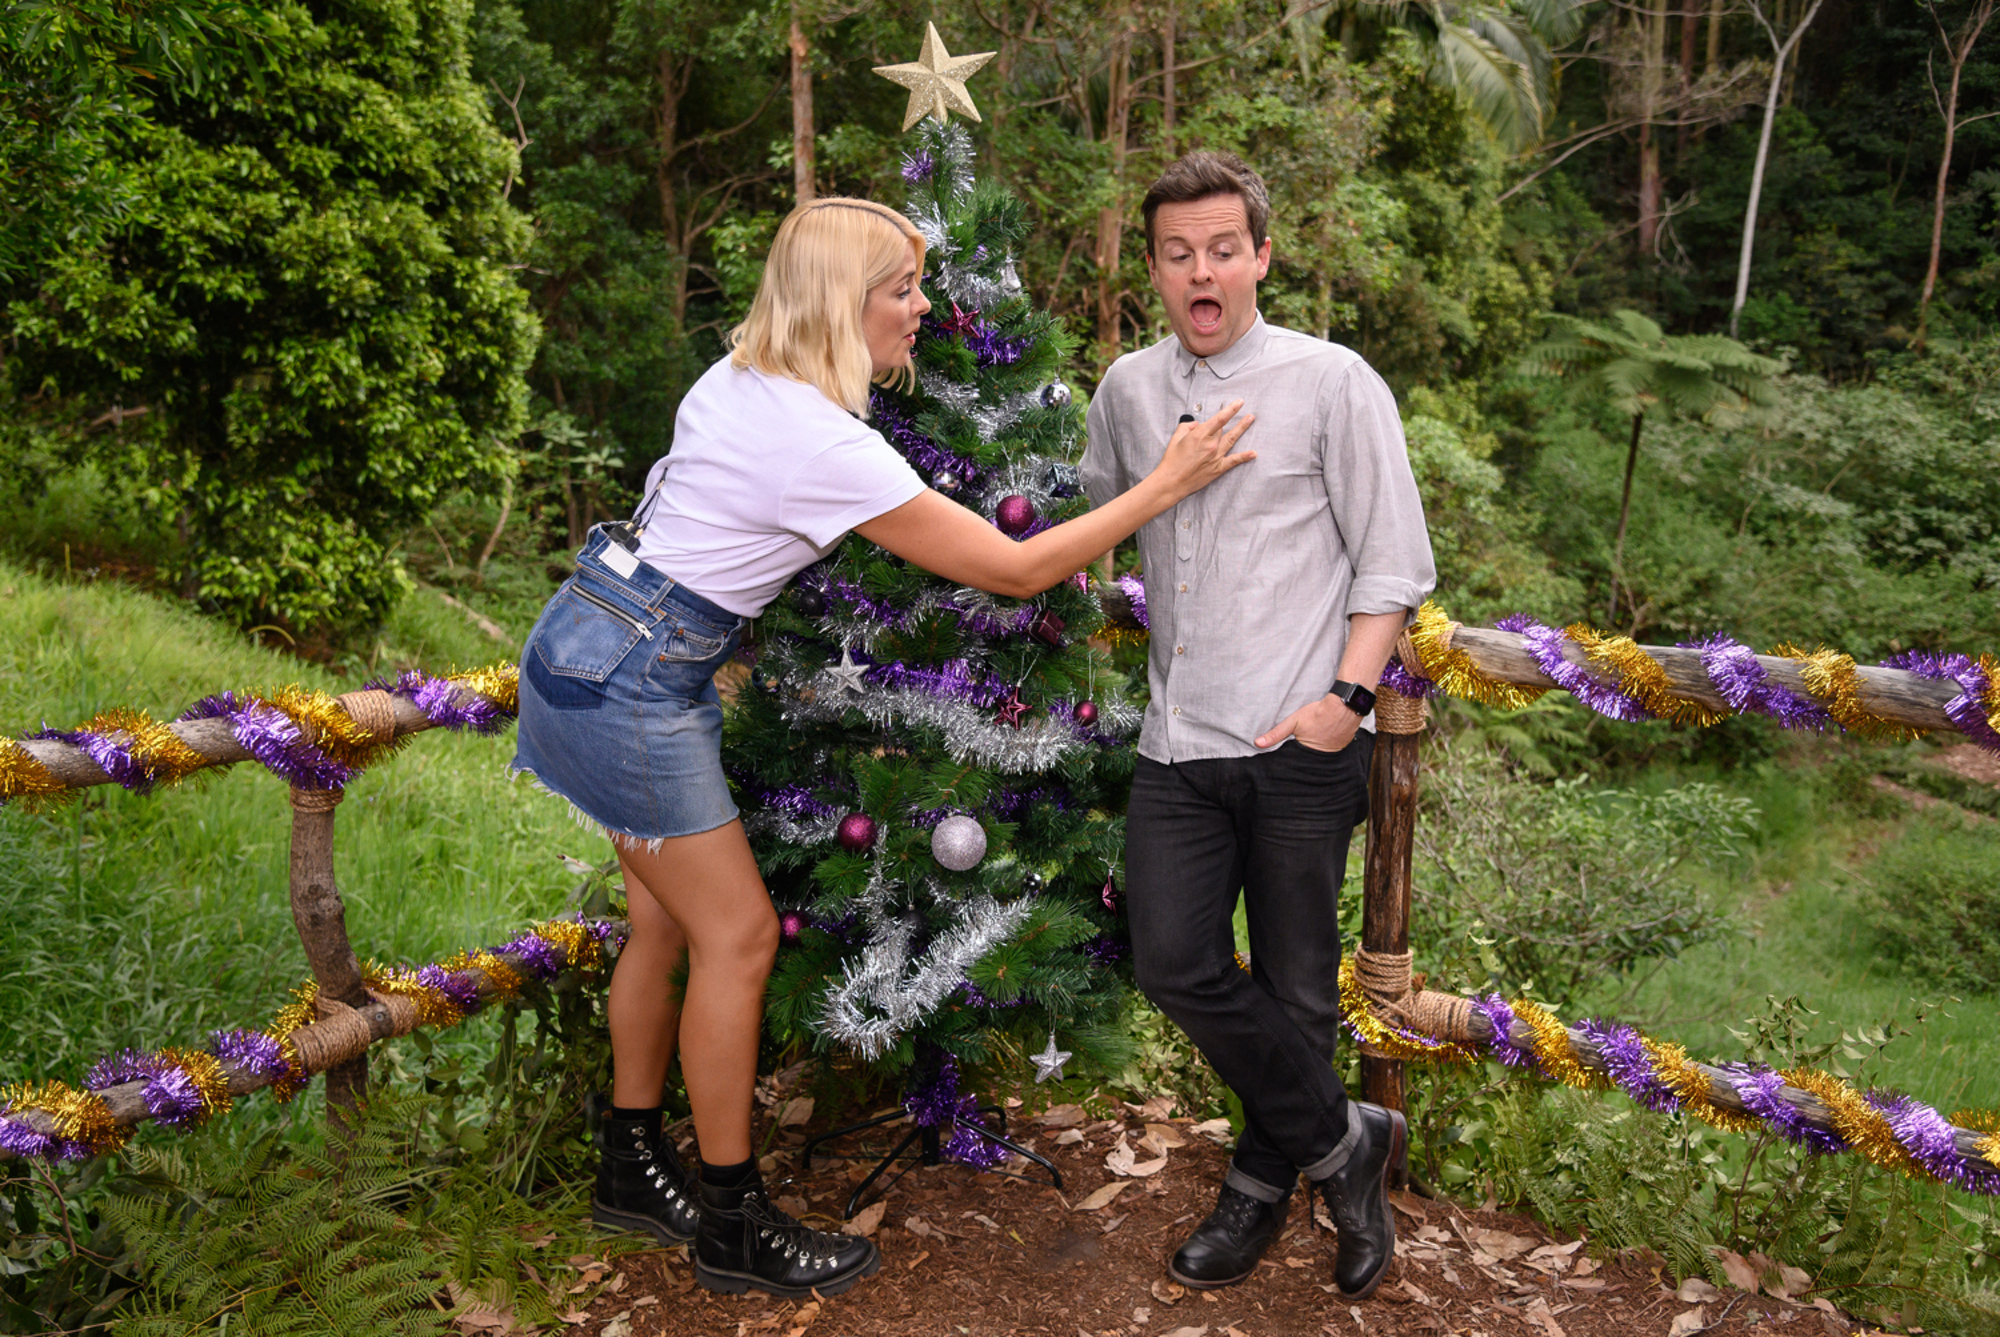 Holly Willougby brushing an ant off Dec